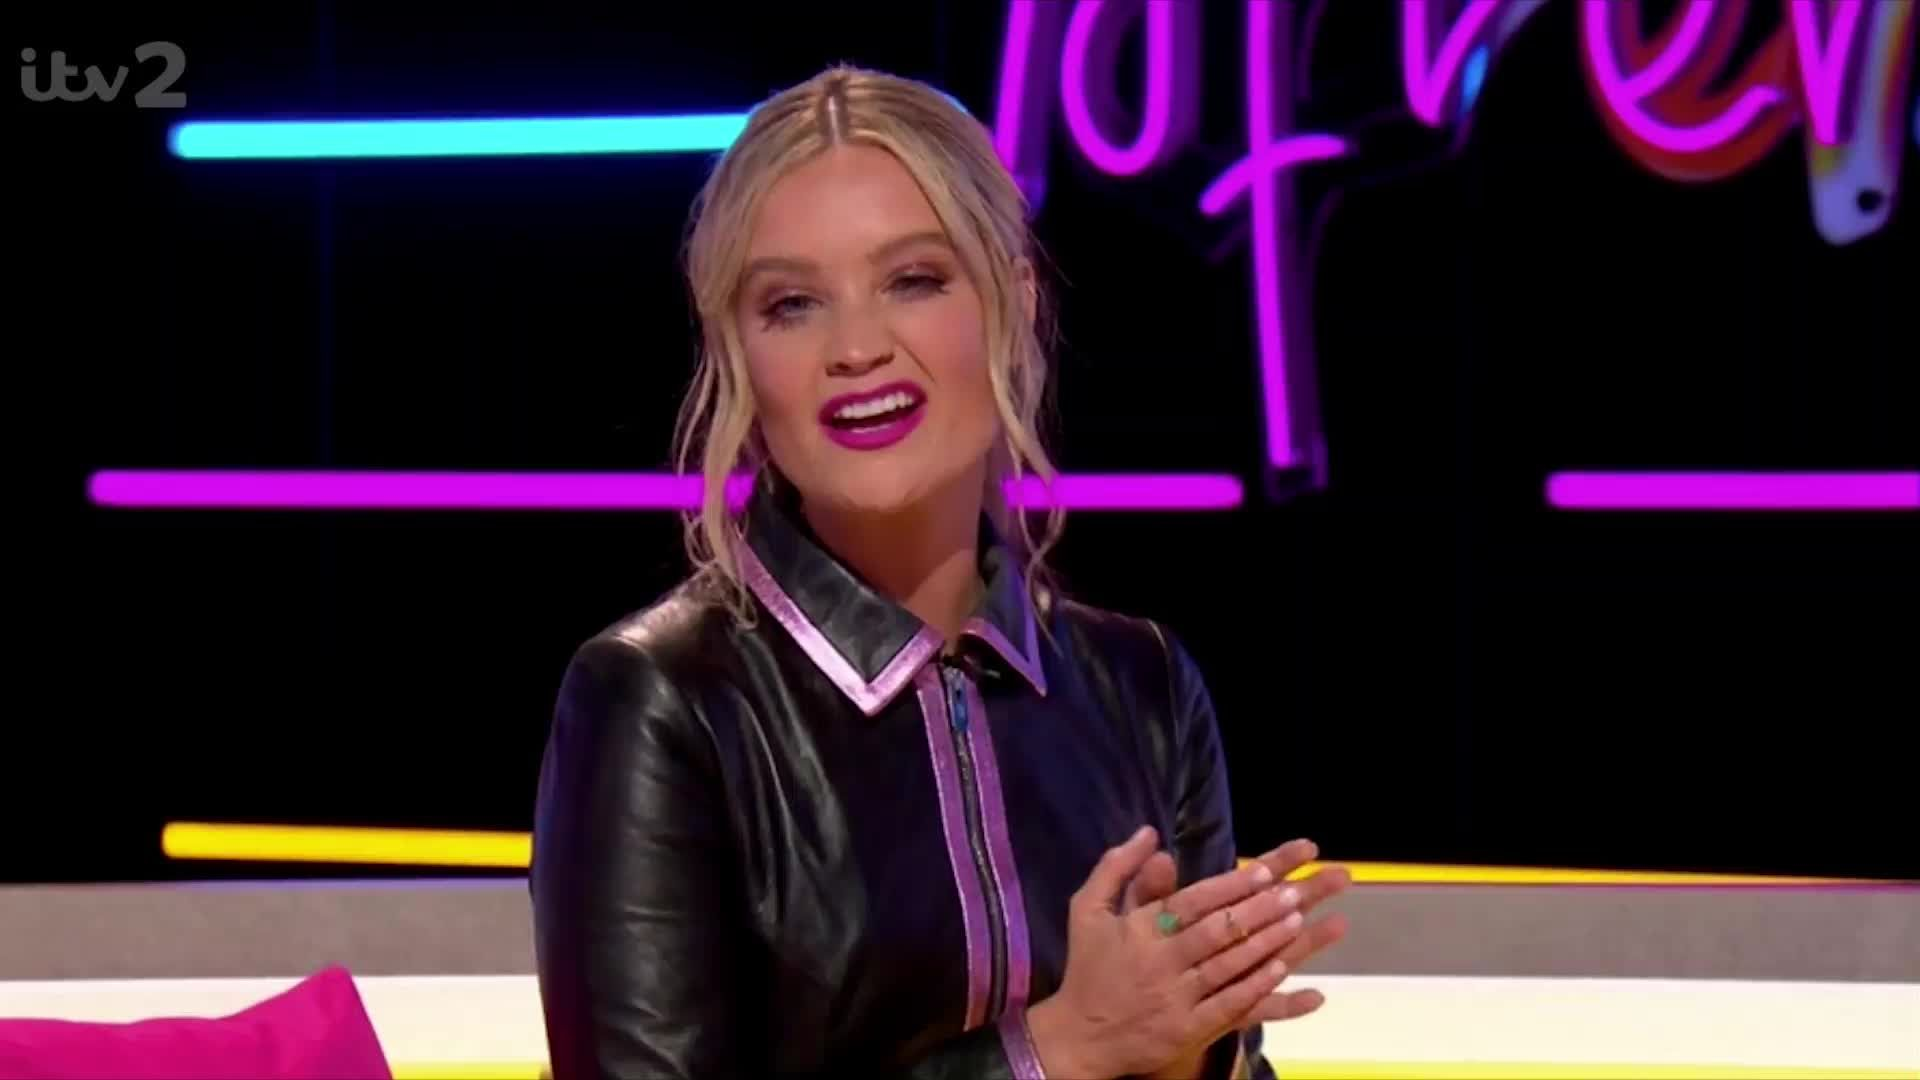 Love Island's Laura Whitmore addresses speculation she's Masked Singer's Octopus